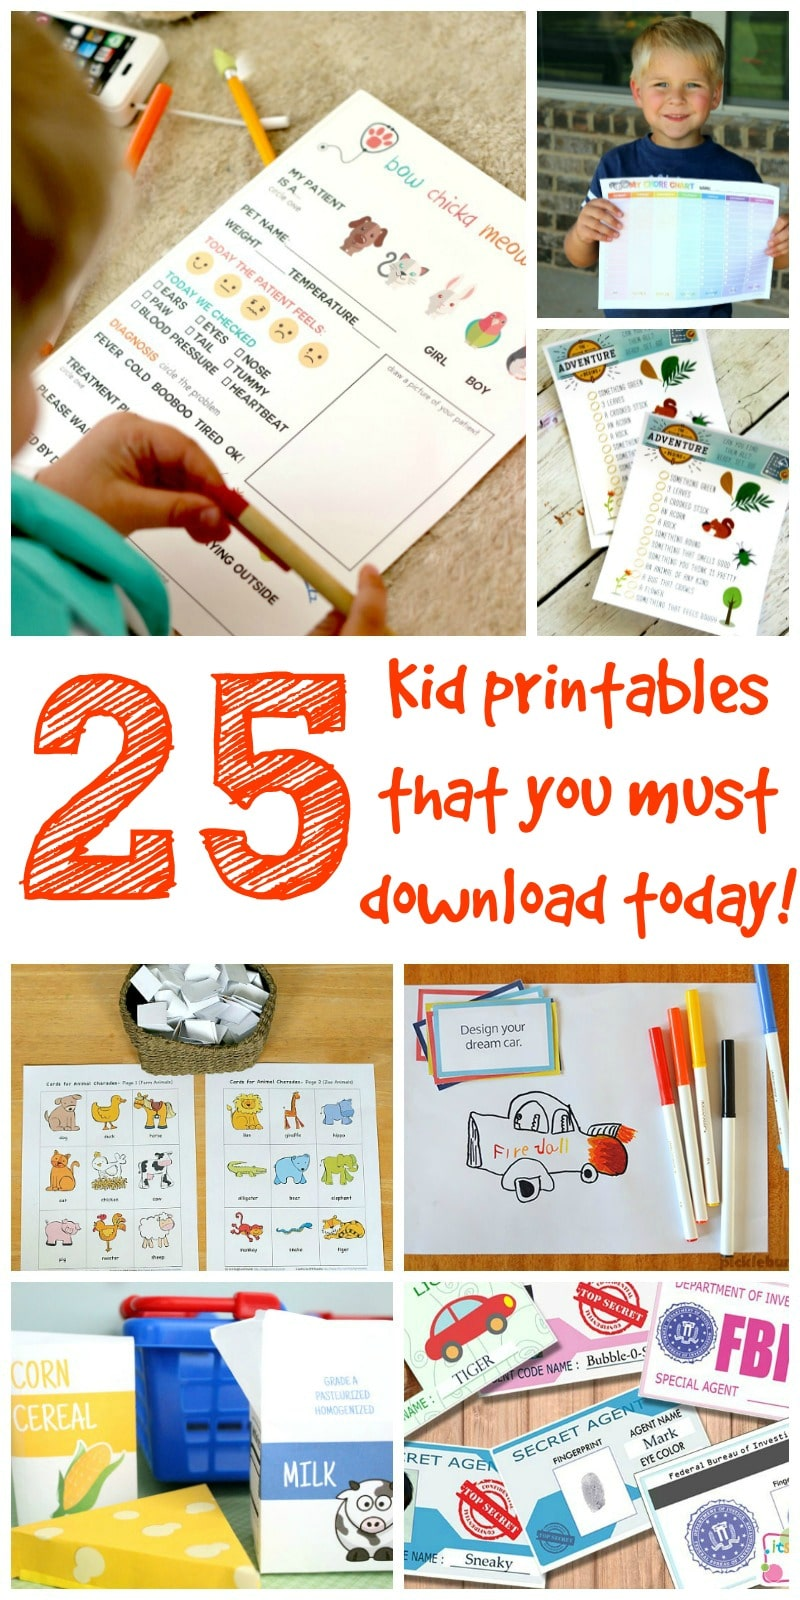 Kid Printables You MUST Download Today -